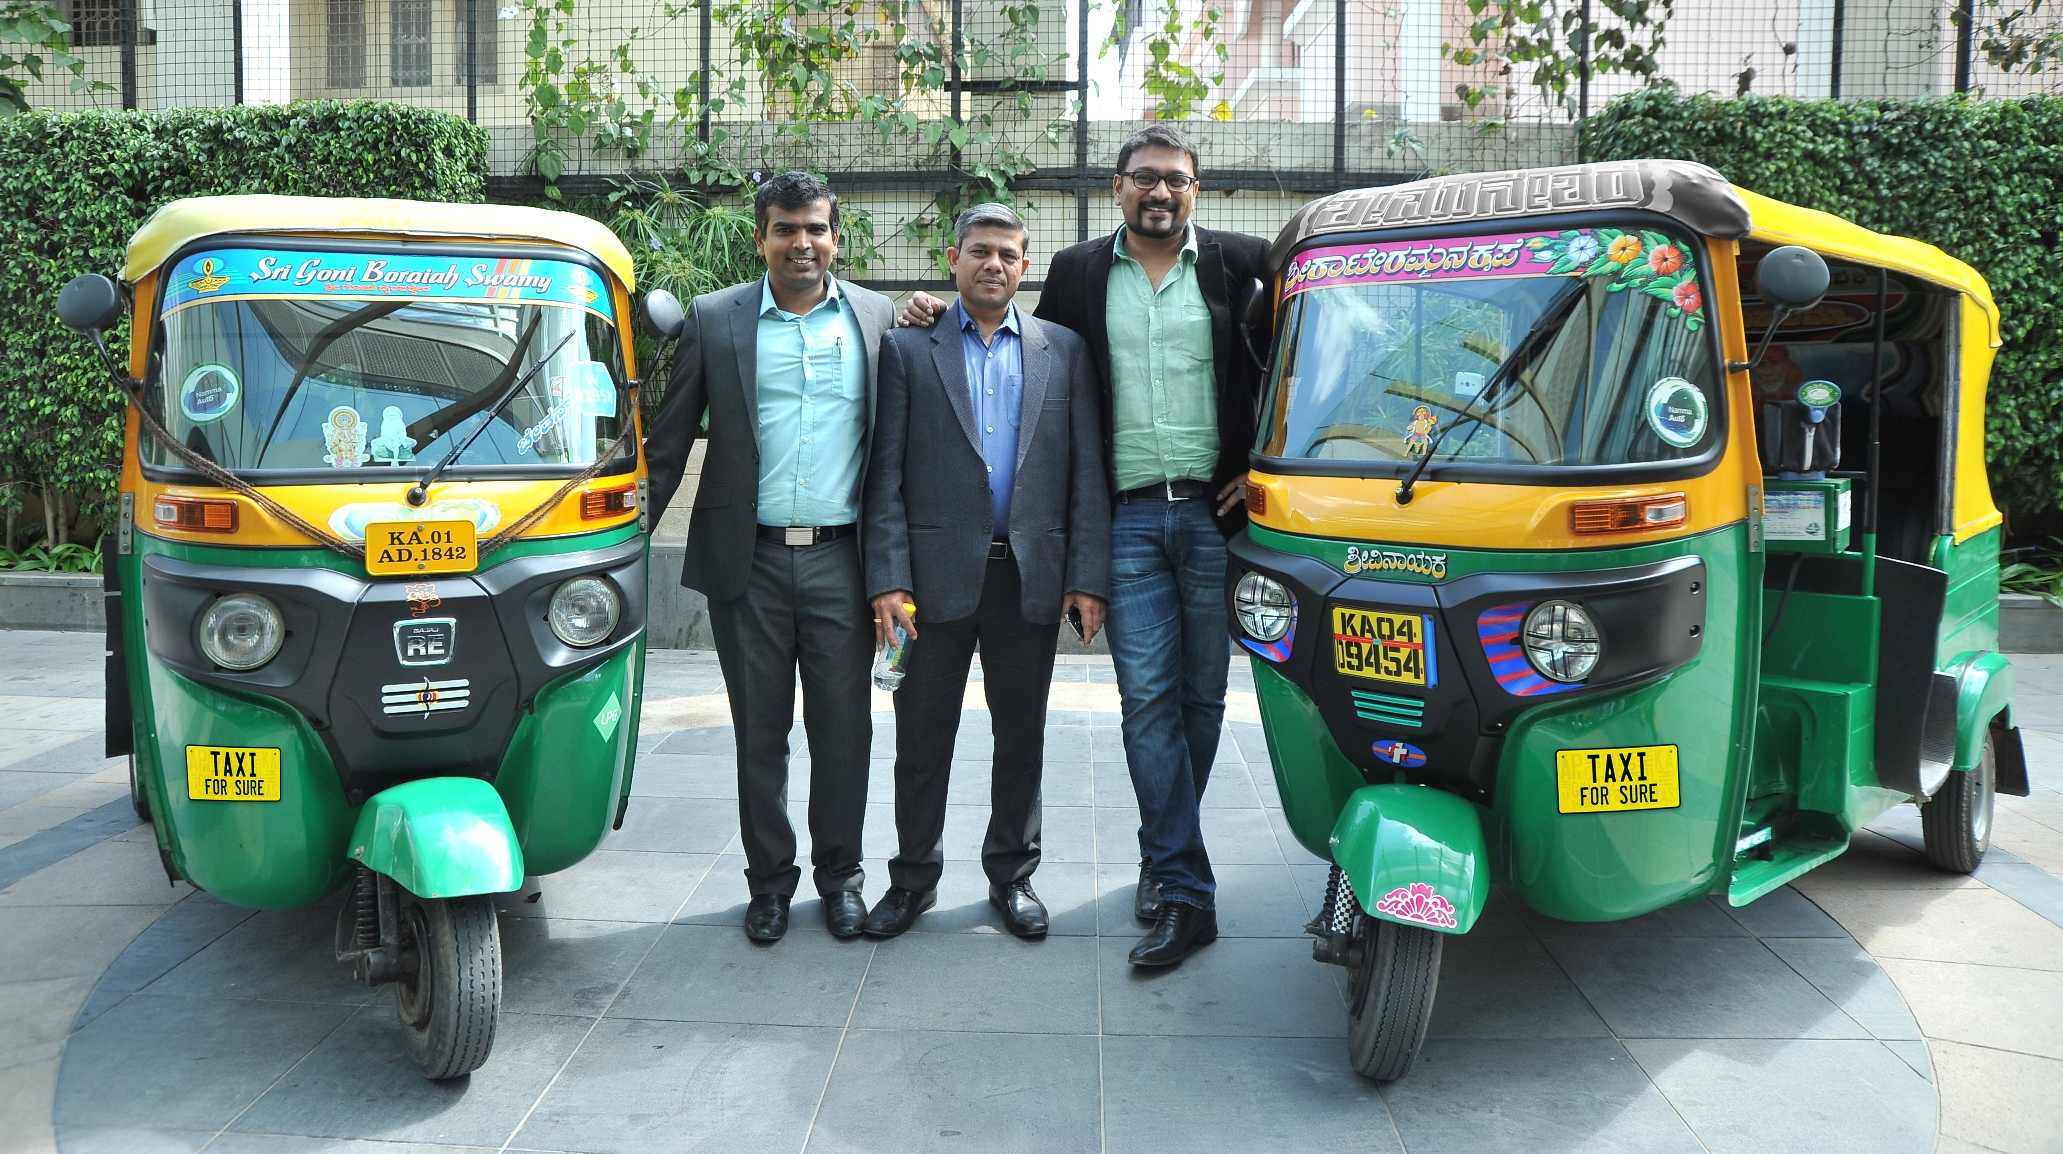 TaxiForSure launches Auto Service_L-R_Raghunandan G CEO and Co-founder Arvind Singhal COO Aprameya R Co-founder and Director TaxiForSure